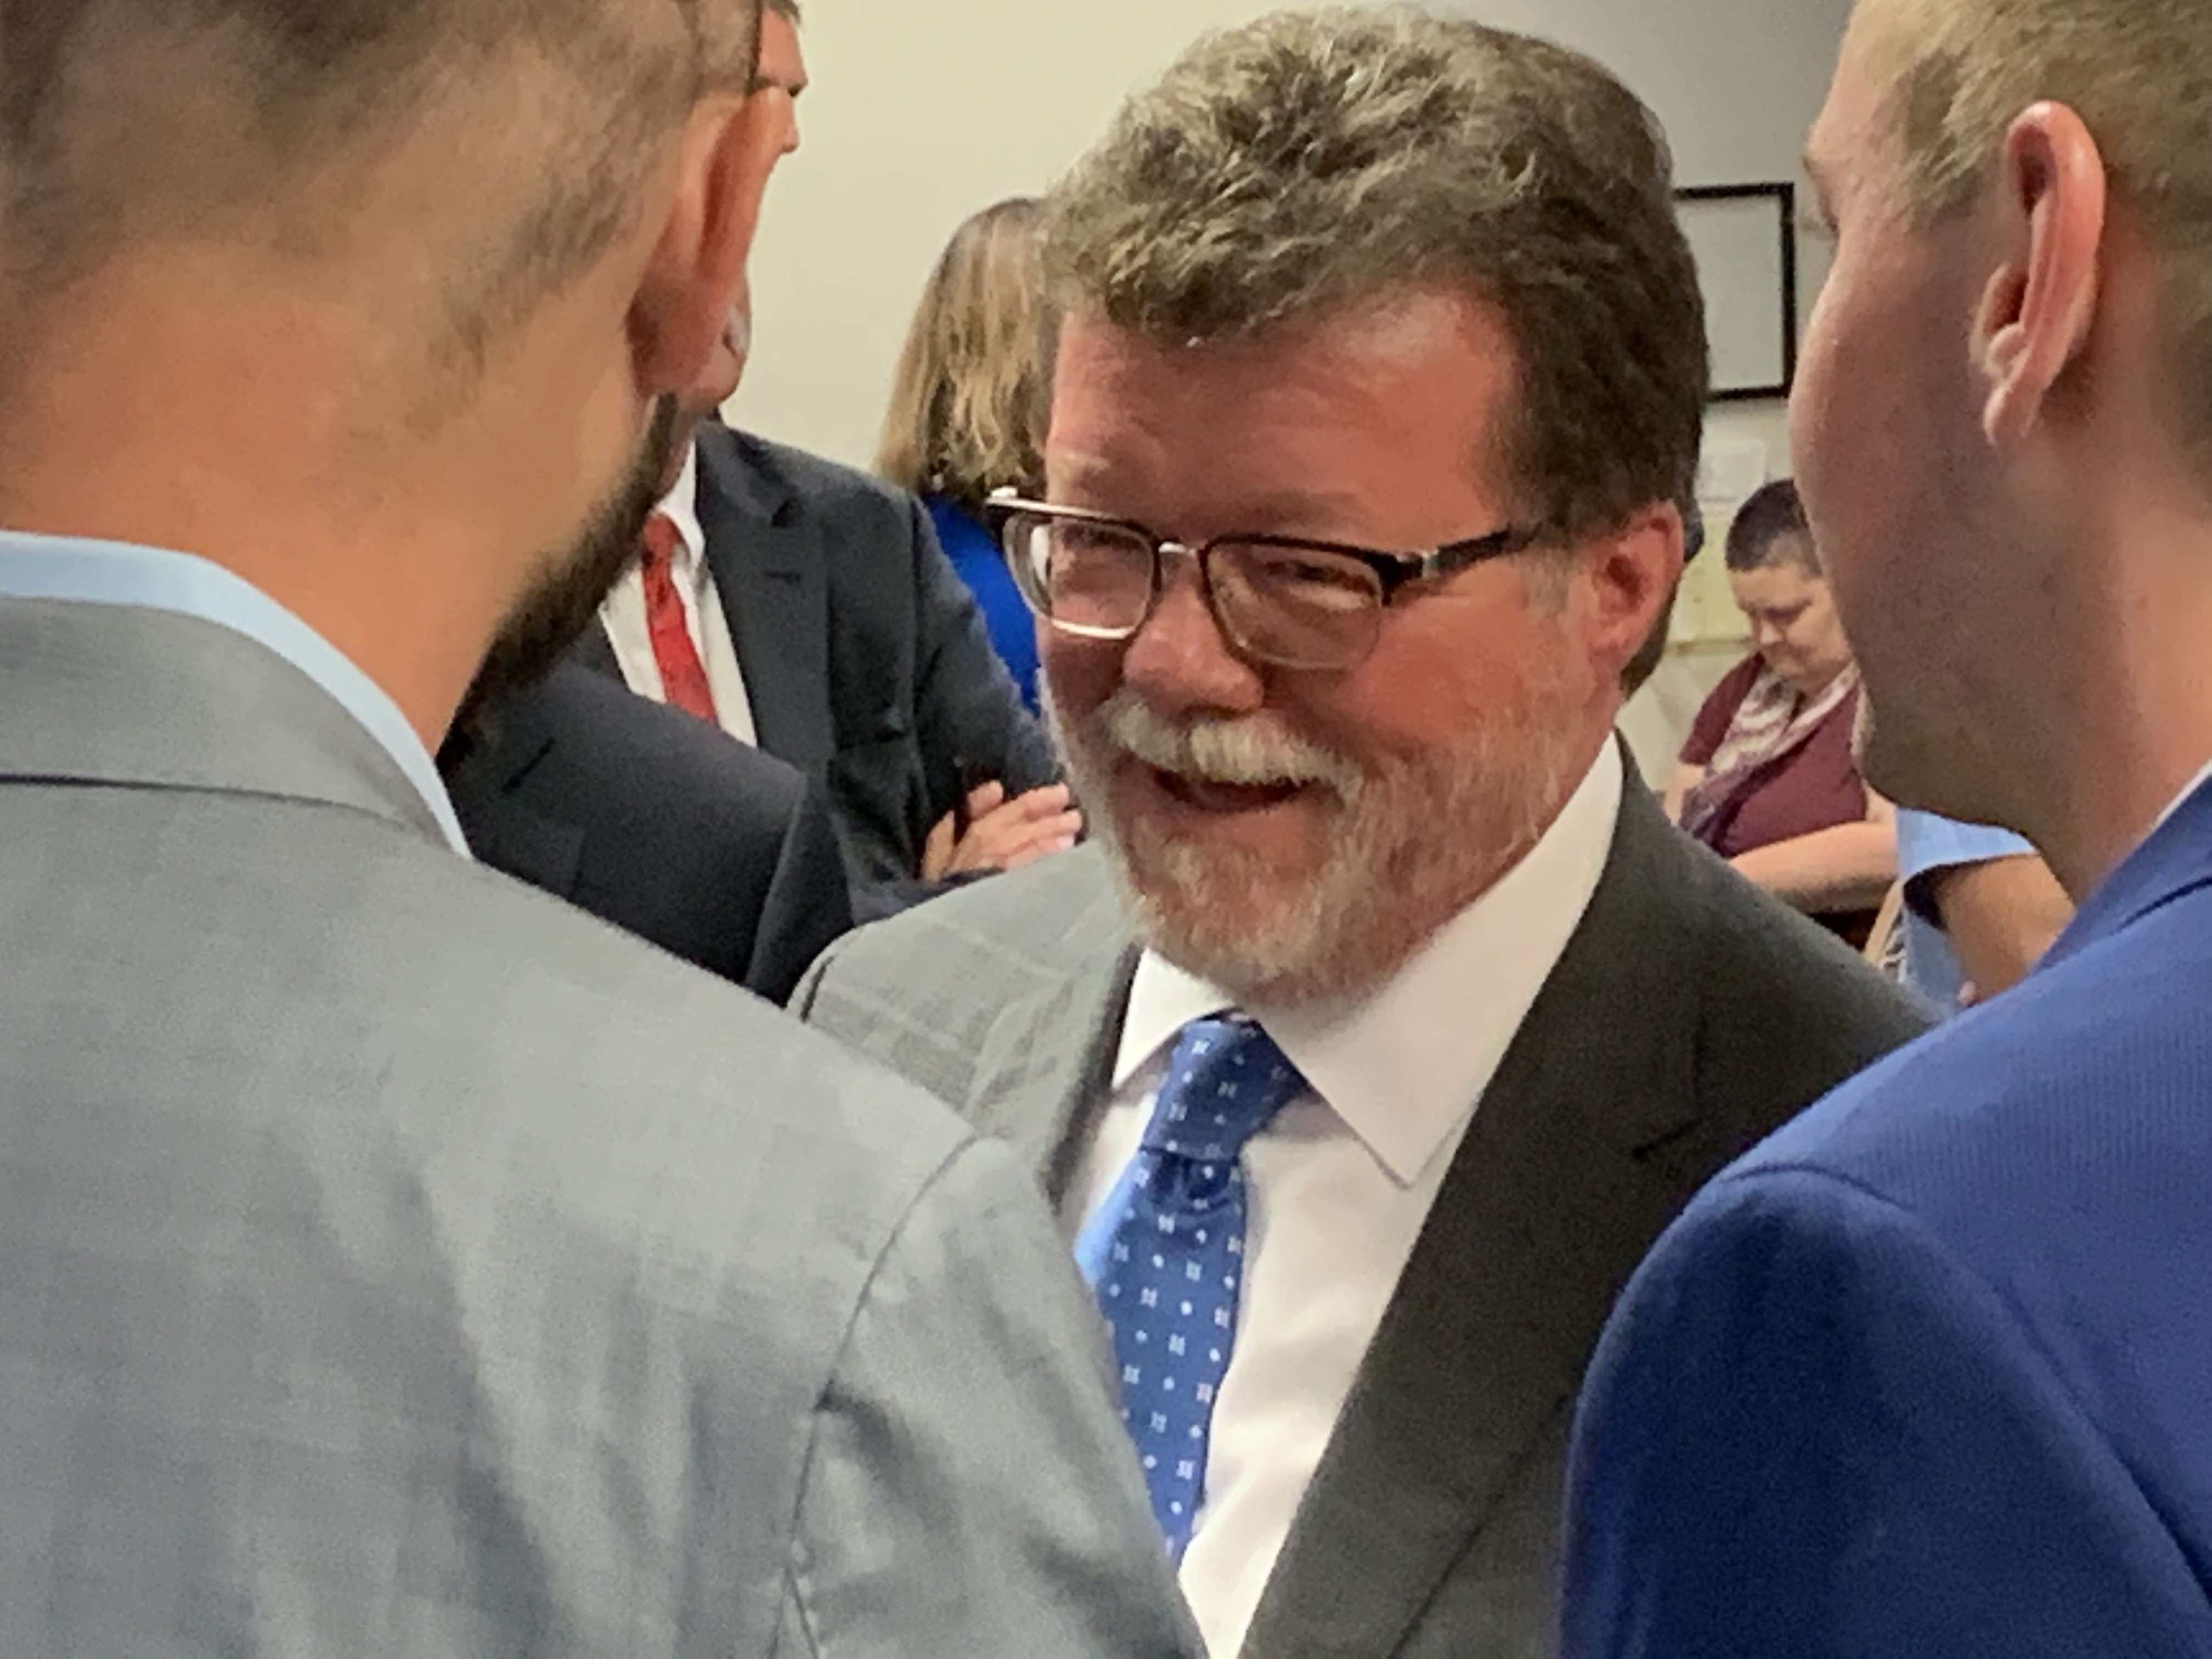 Rick Heidner, pictured at a 2019 Illinois Racing Board meeting. State regulators have settled a disciplinary complaint against Heidner's video gambling company.